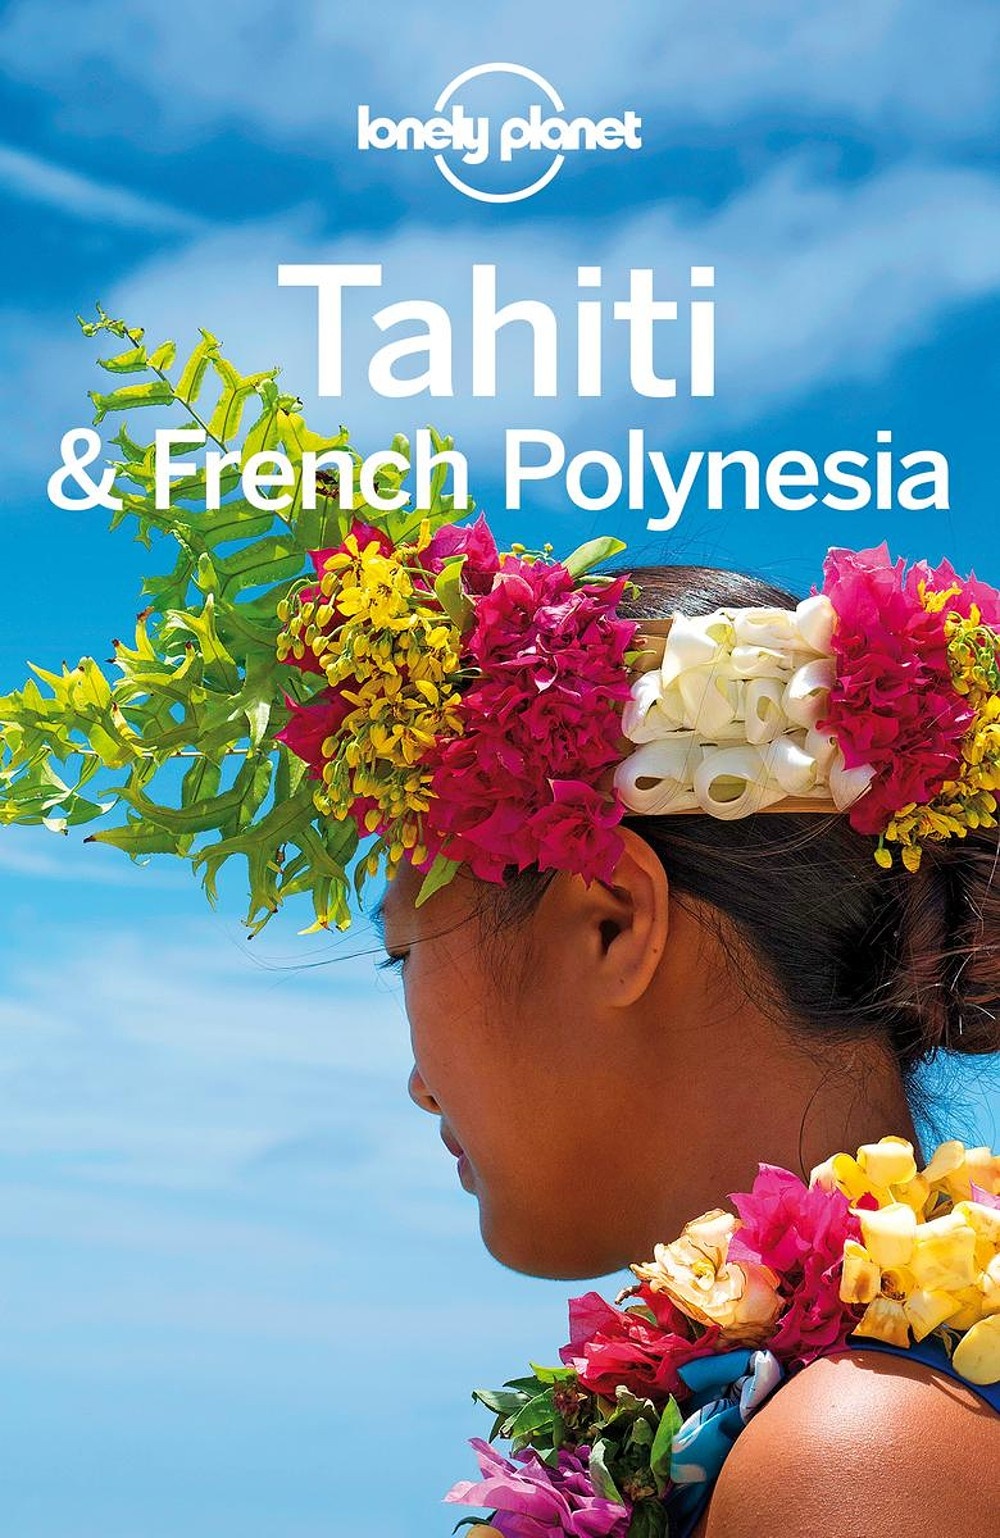 Lonely Planet Tahiti, French Polynesia 10.